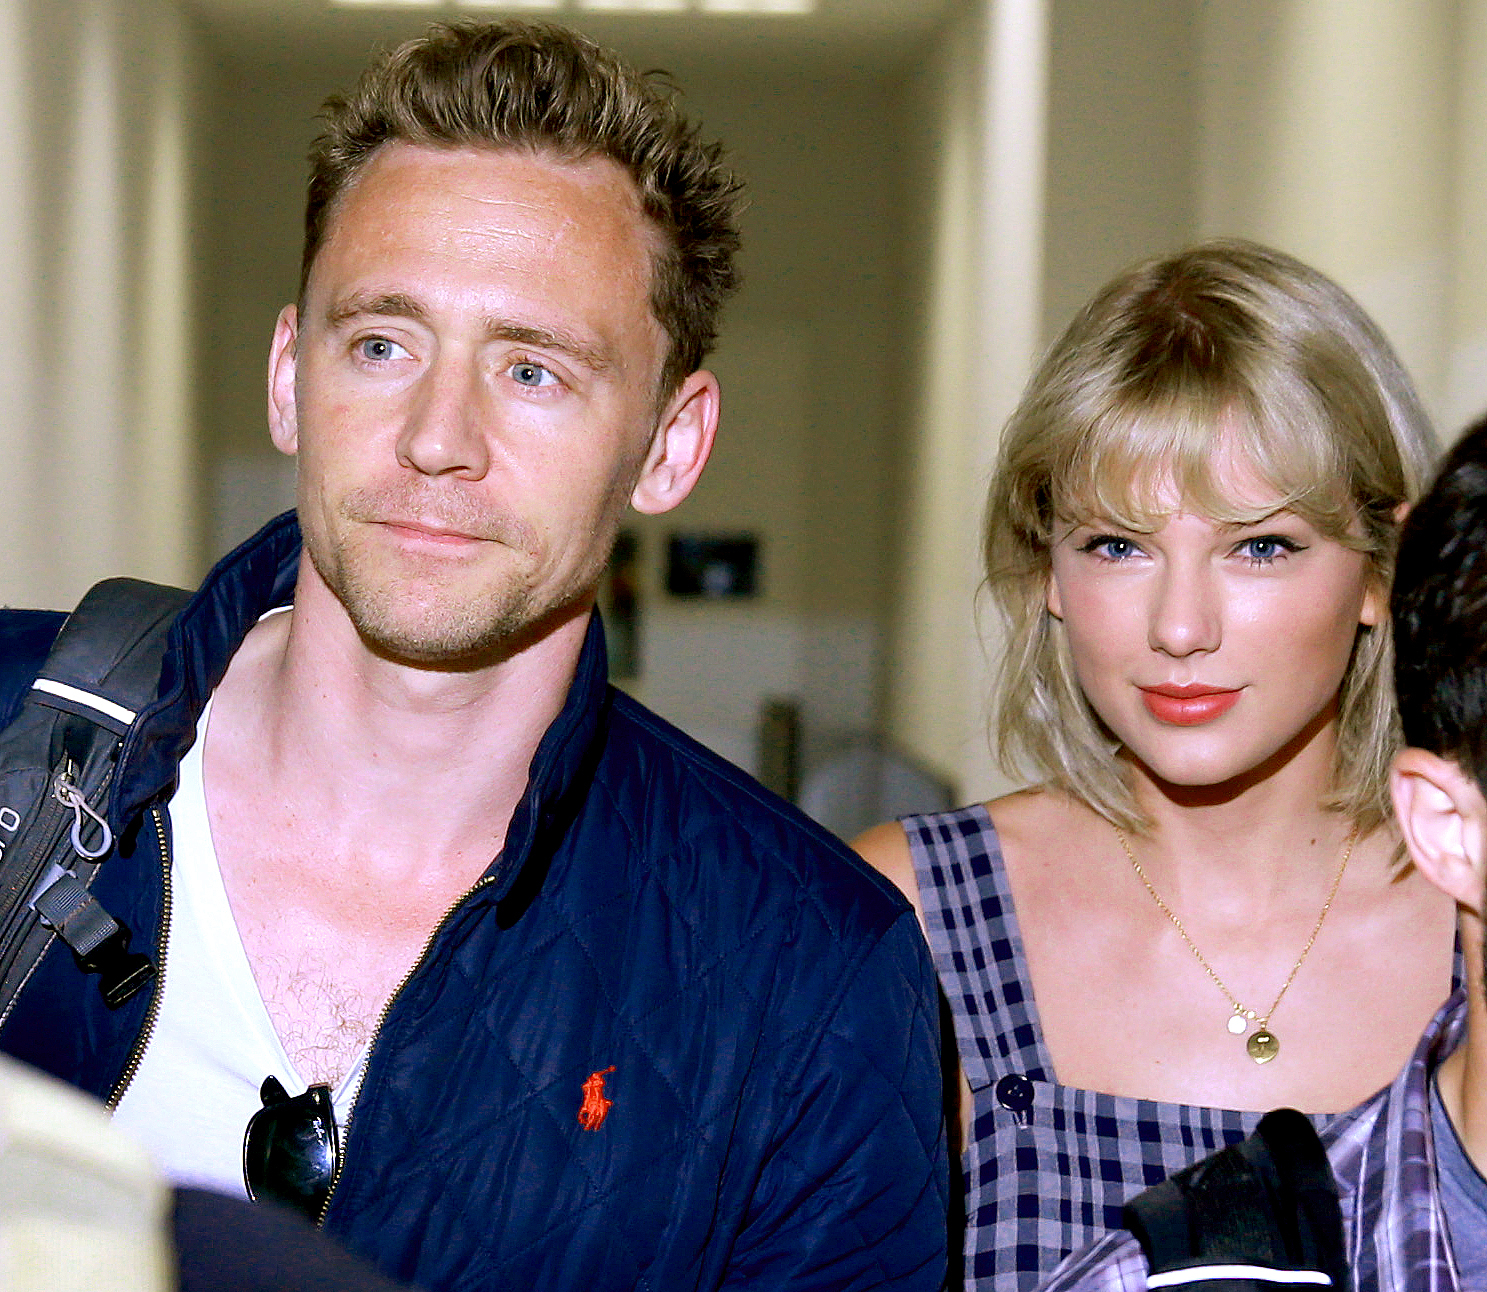 Tom Hiddleston and Taylor Swift arrive at Sydney International Airport in Sydney, New South Wales.